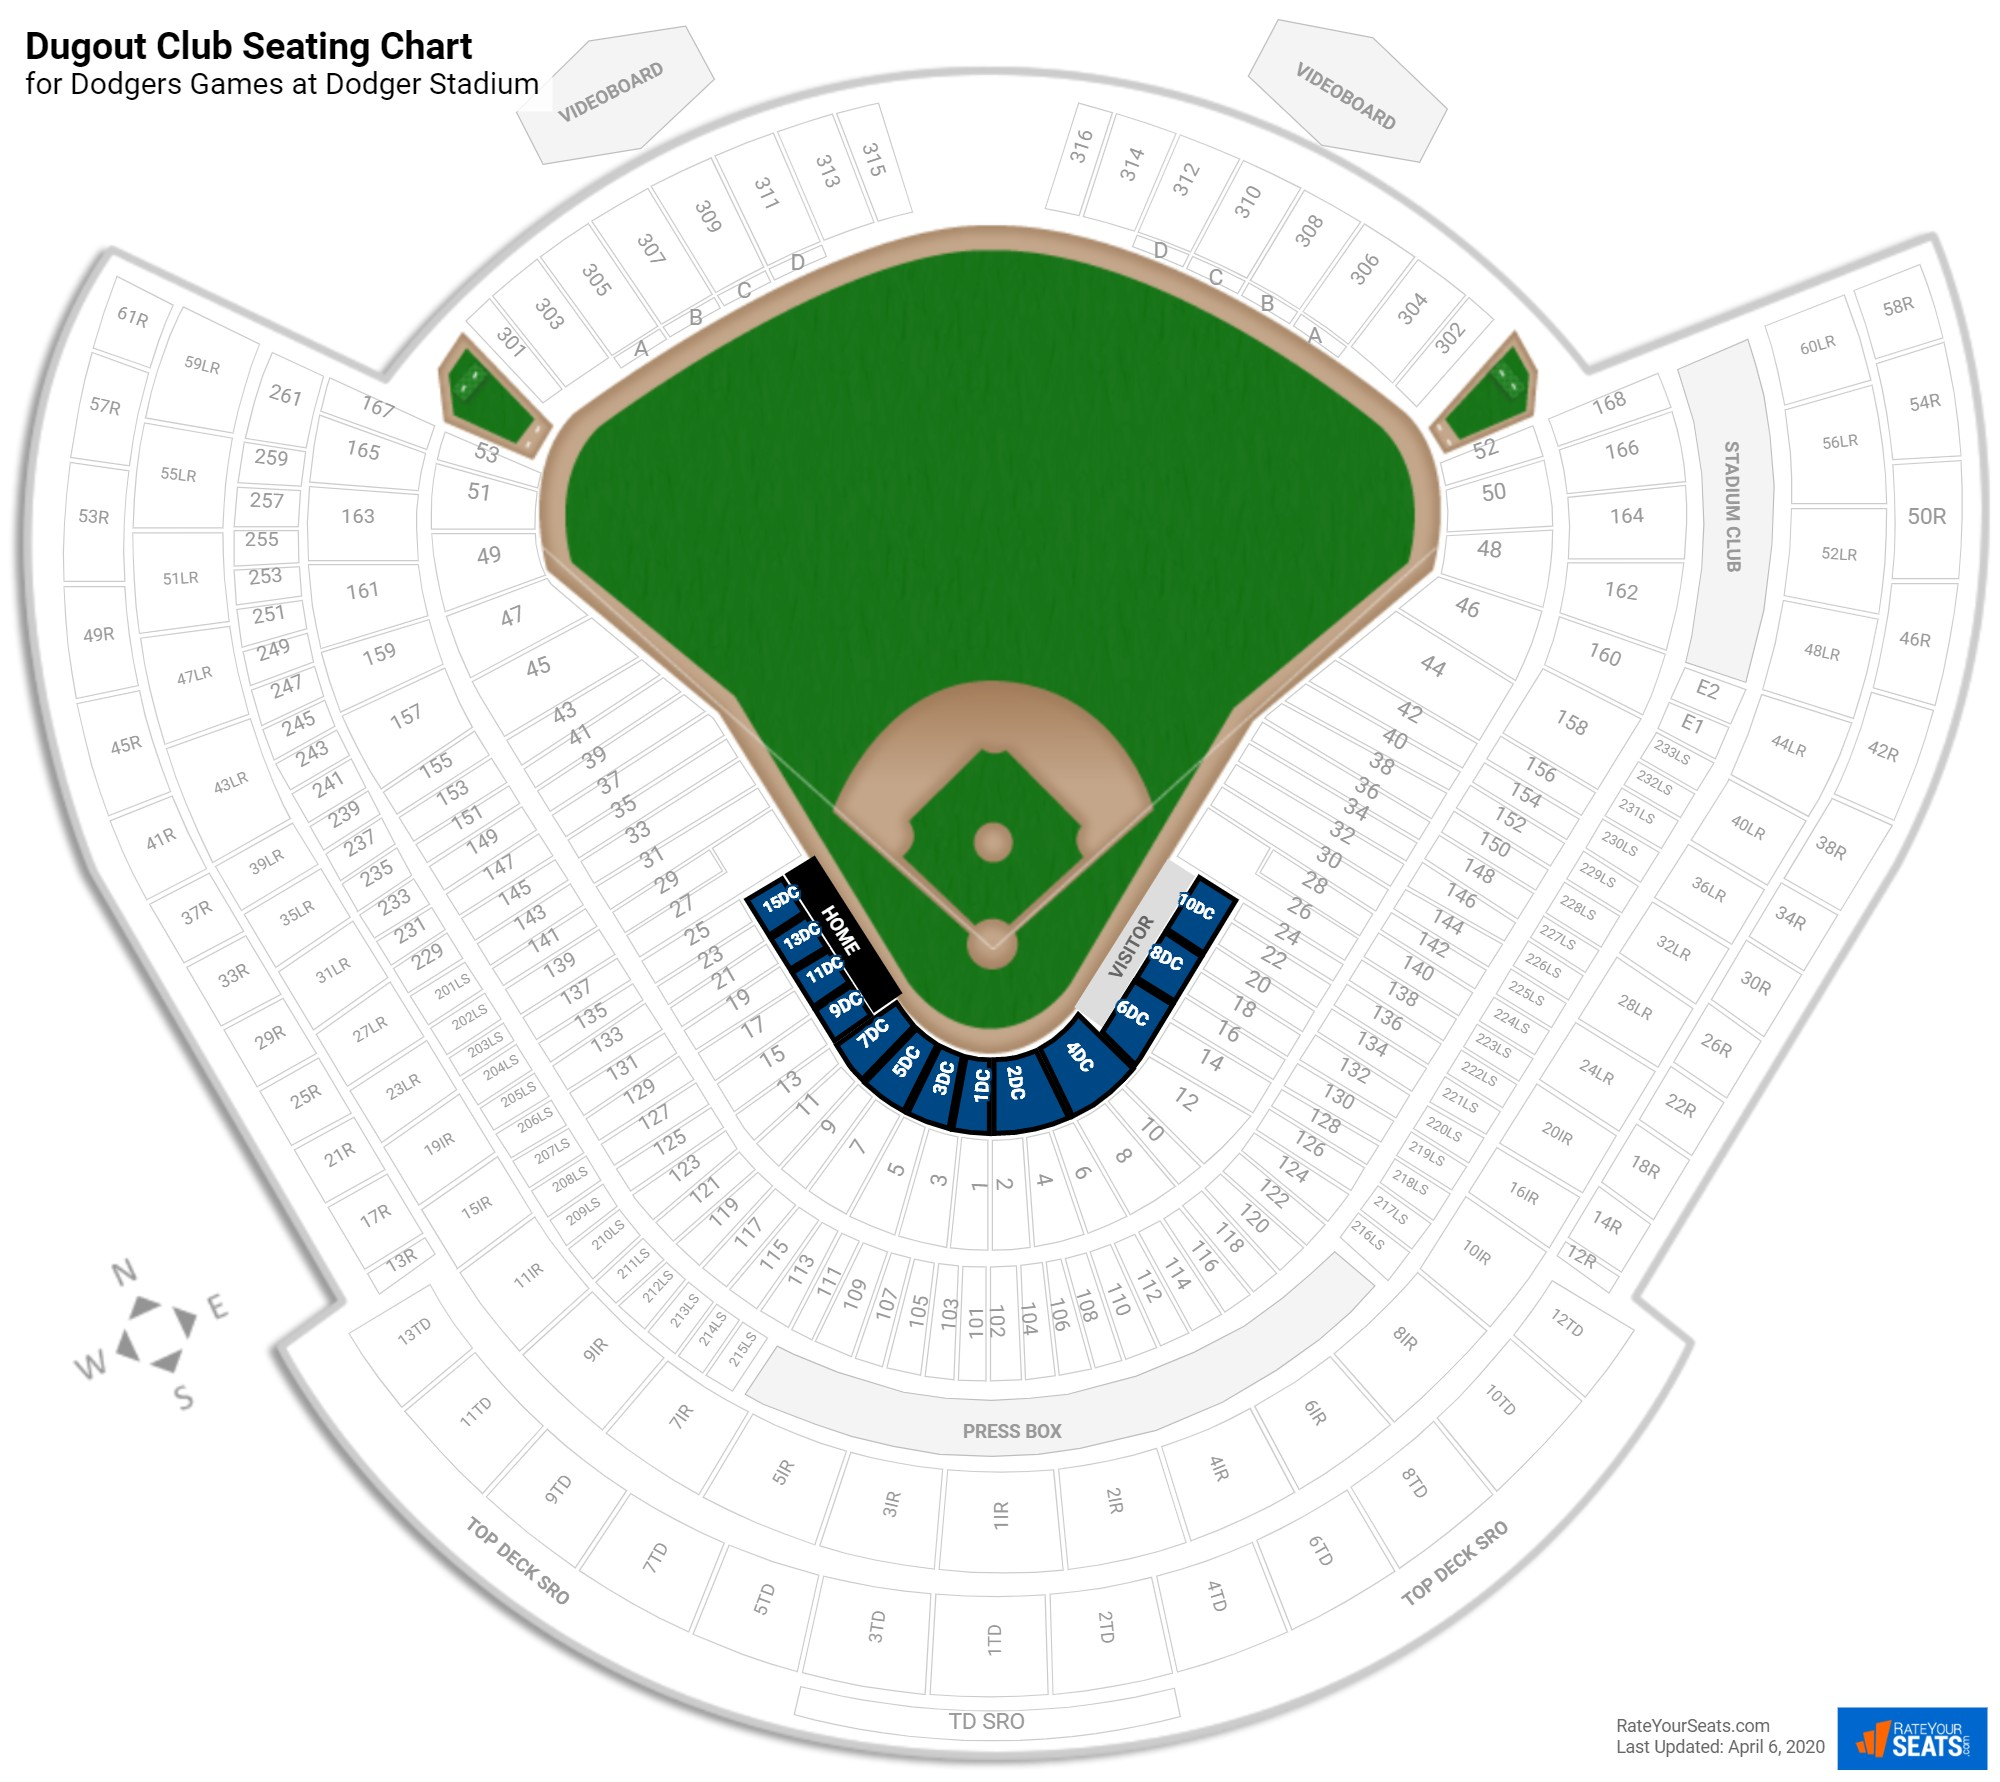 Dodger Stadium Dugout Club seating chart